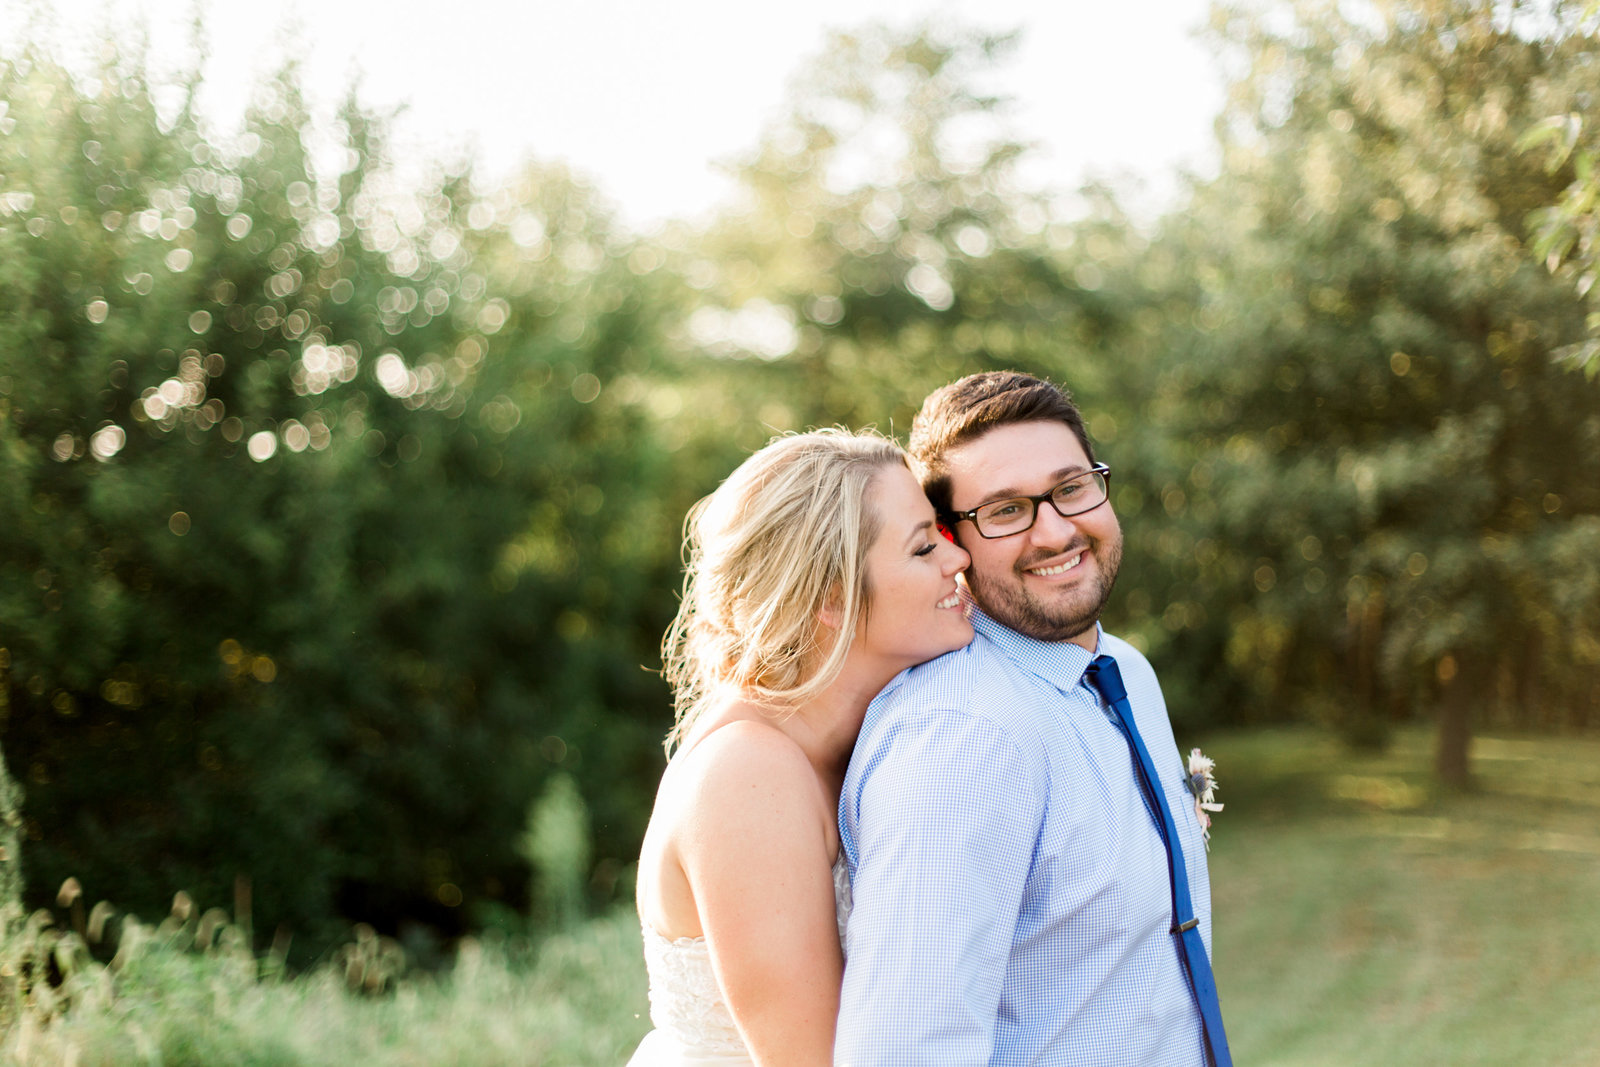 MorganWilliamsPhotography_CornerHouseWedding_Veselak-114